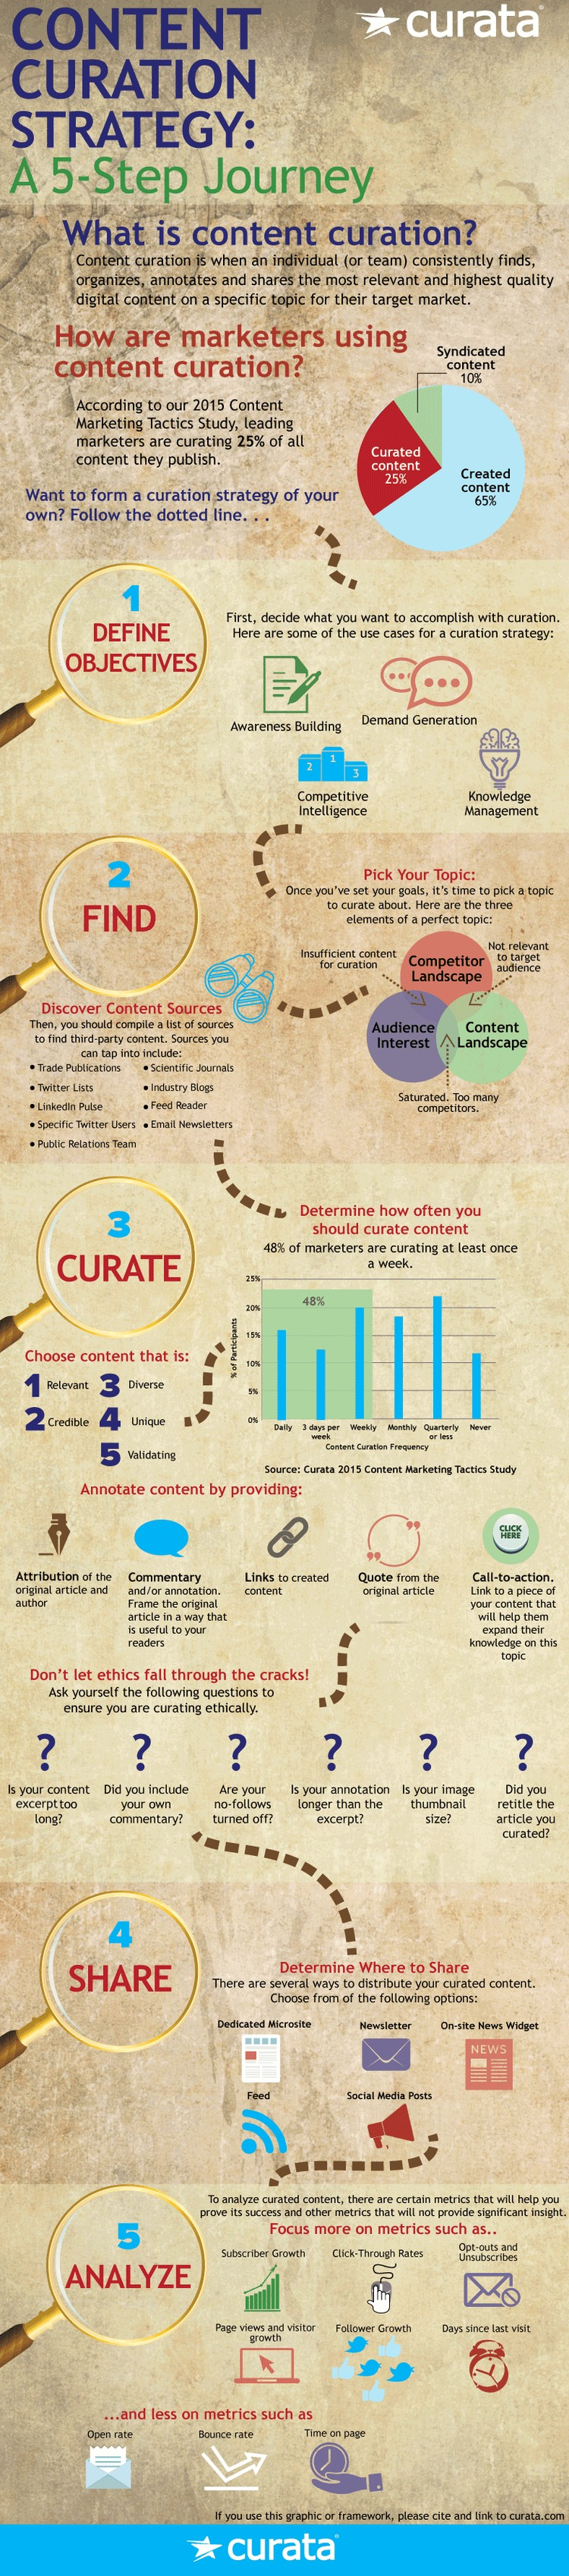 Content Curation Strategy: A 5-Step Journey [Infographic] | Content Marketing Forum | The Marketing Technology Alert | Scoop.it